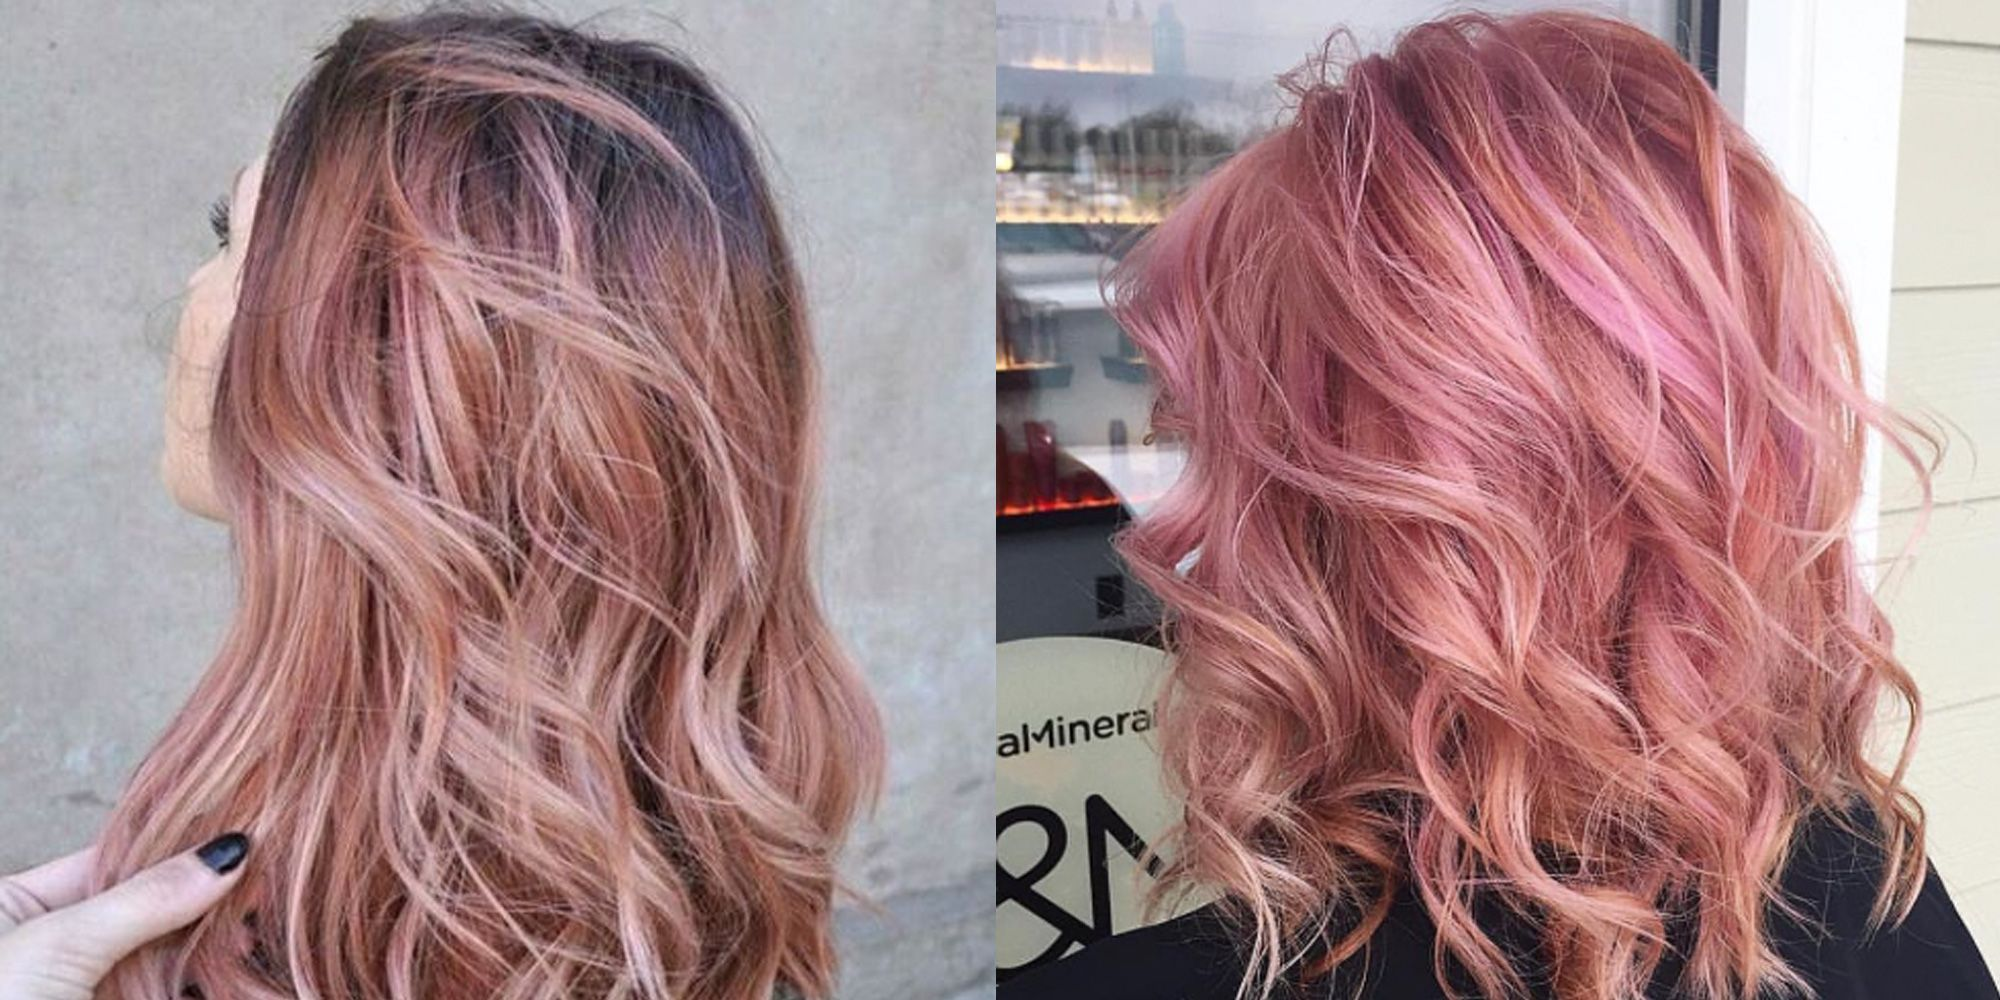 Hair Color Ideas For Blondes 2016